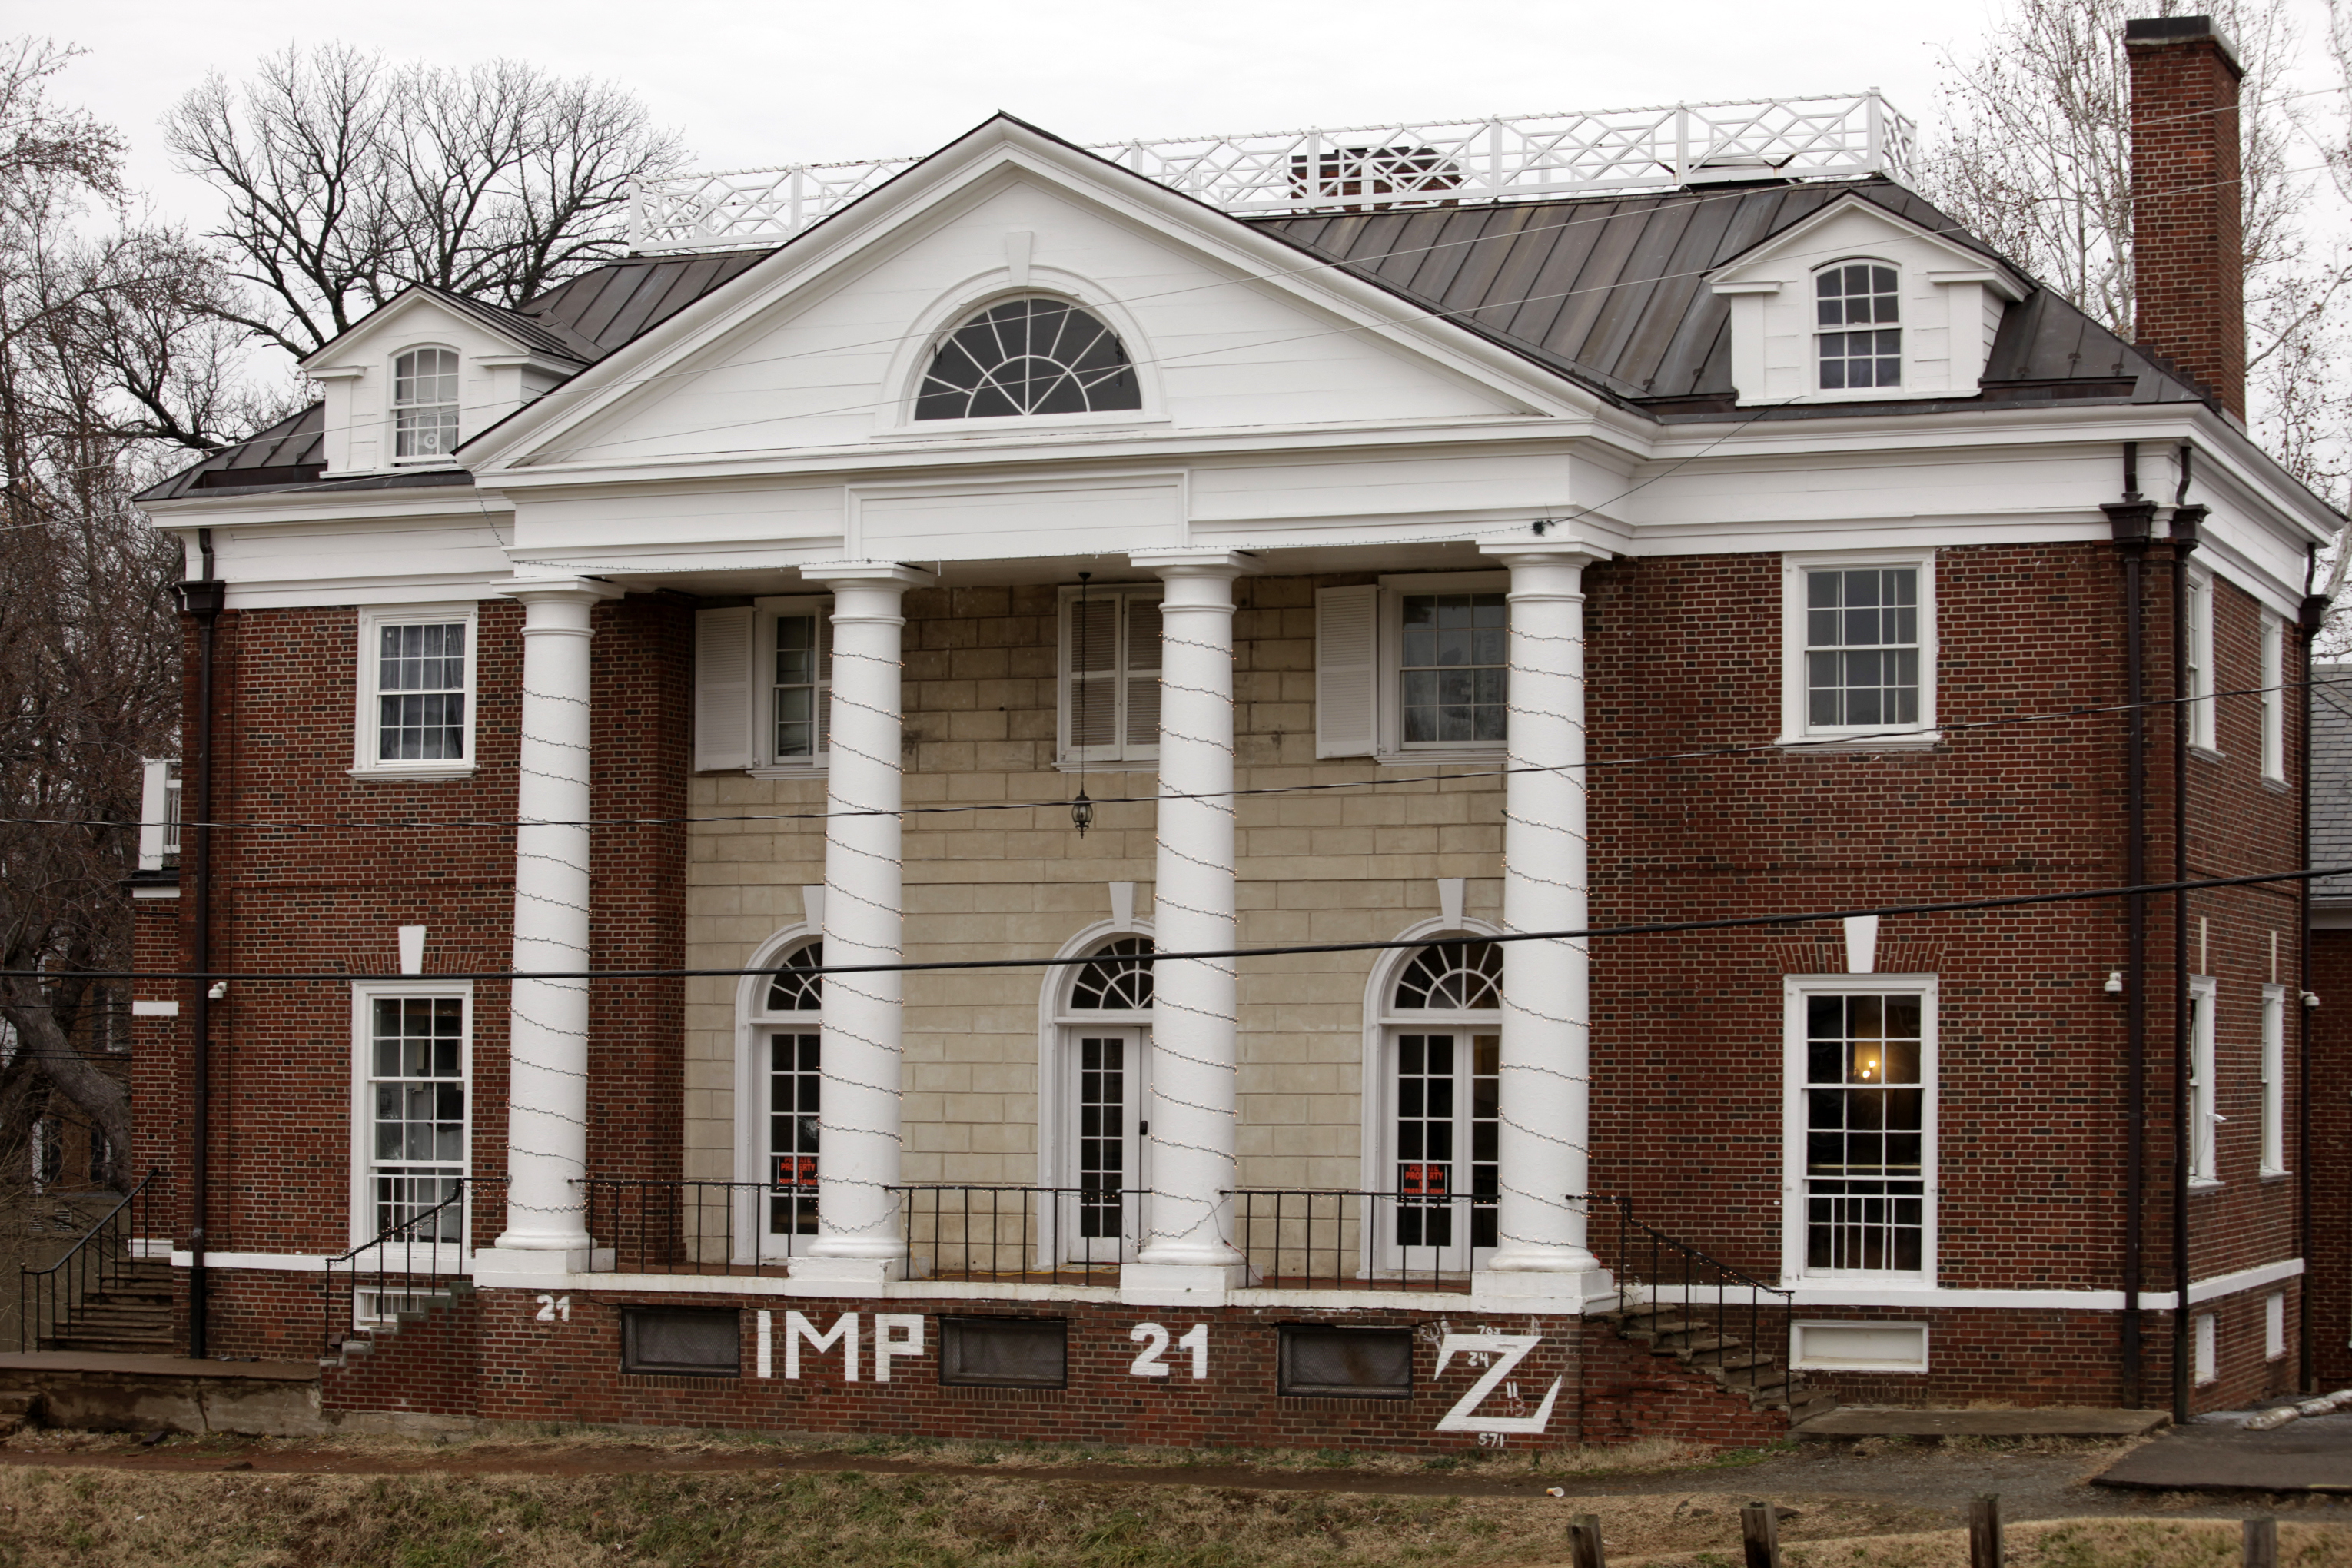 The Phi Kappa Psi fraternity house is seen on the University of Virginia campus on December 6, 2014 in Charlottesville, Virginia.